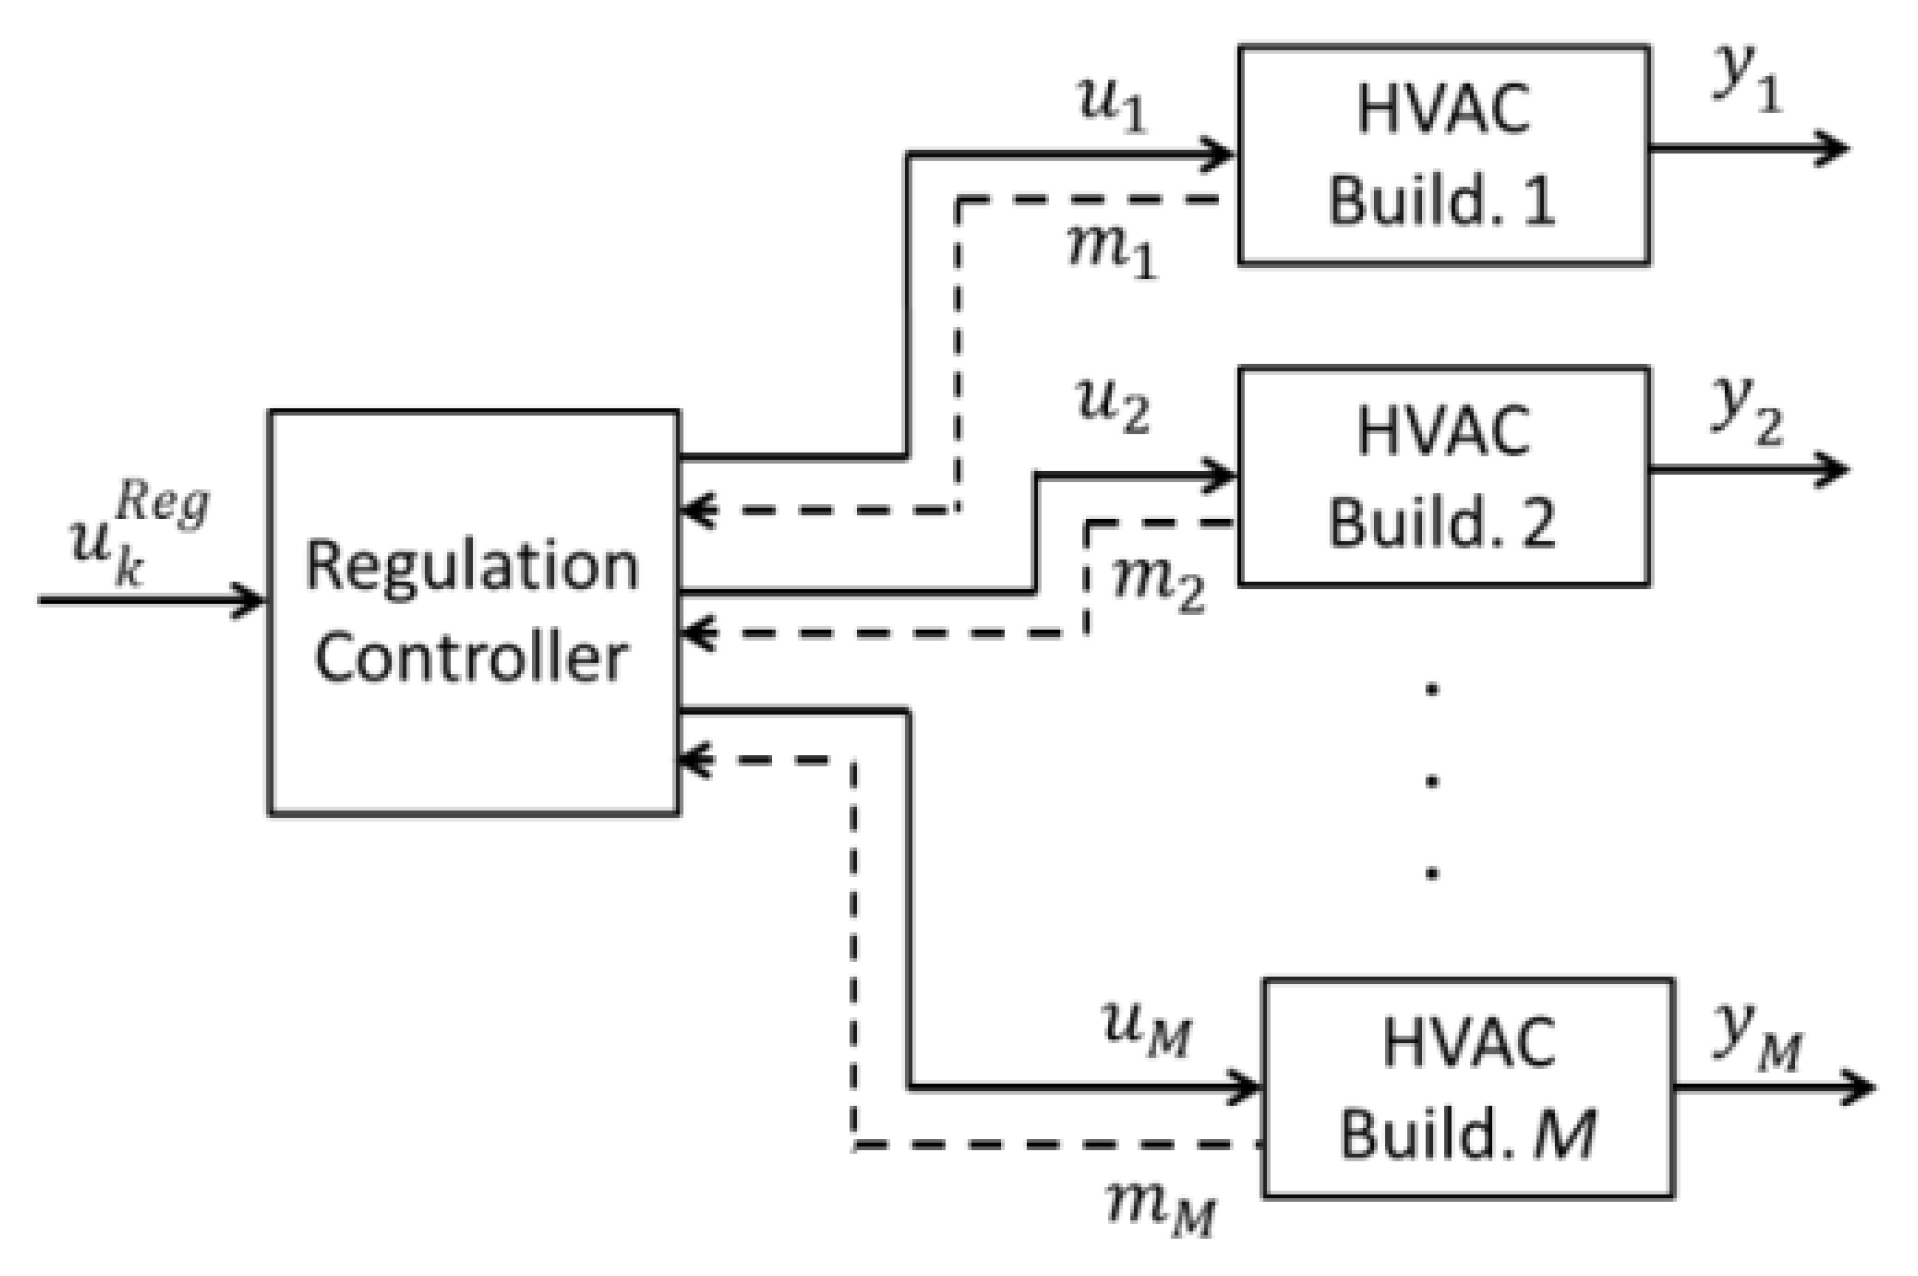 Energies Free Full Text Coordination And Control Of Building Hvac Drawing Key 11 01852 G005